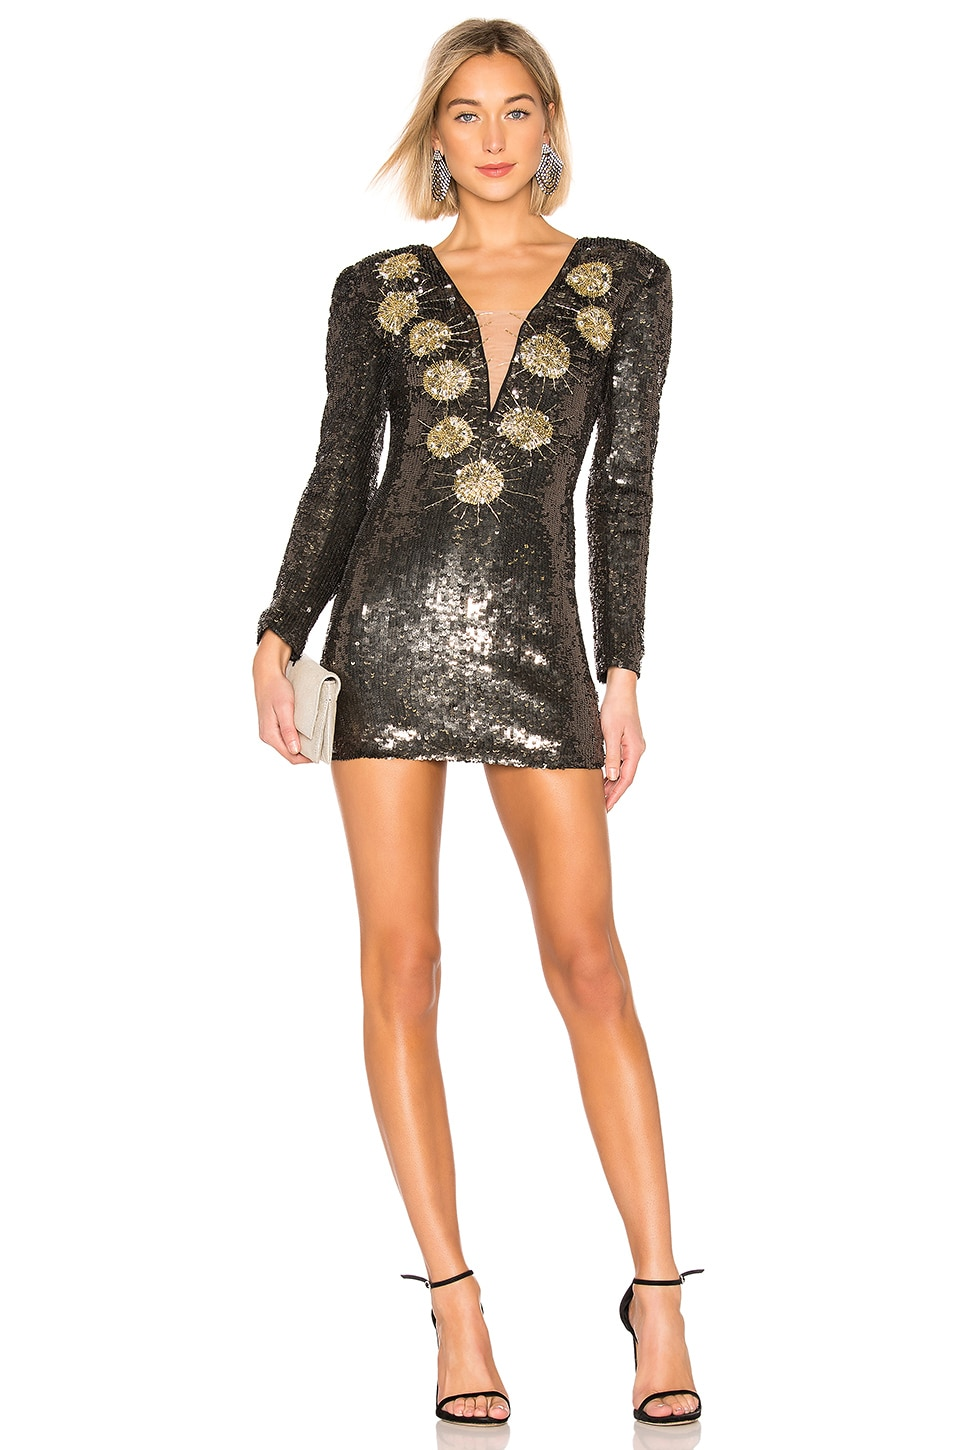 X by NBD Bryson Embellished Mini Dress in Pewter & Gold